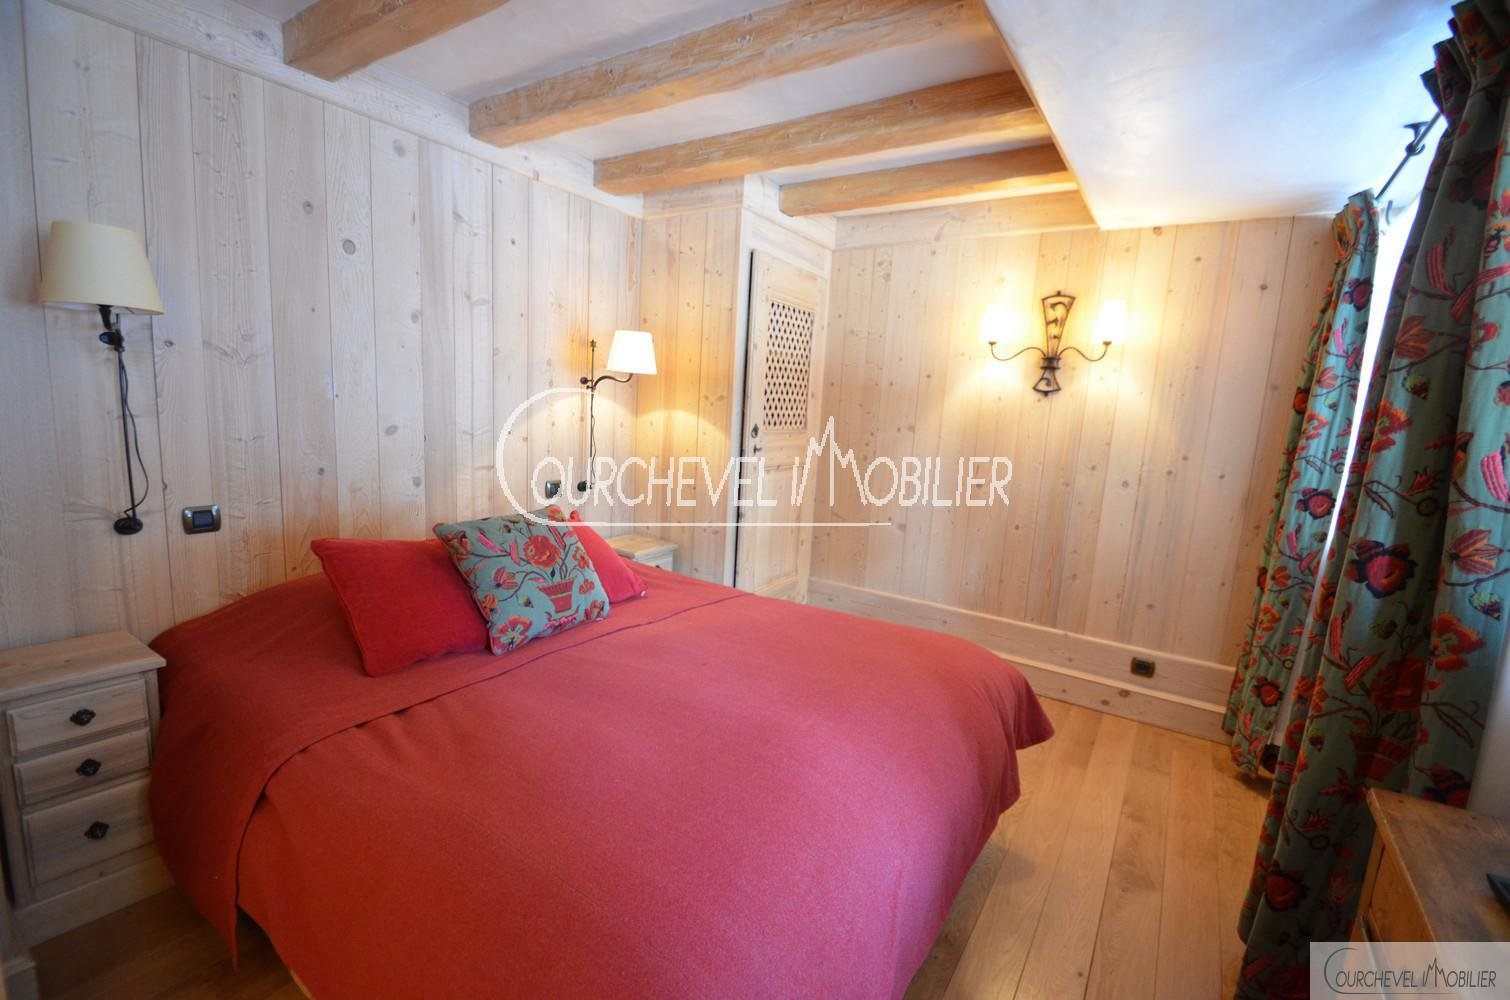 Superbe appartement - Courchevel Moriond